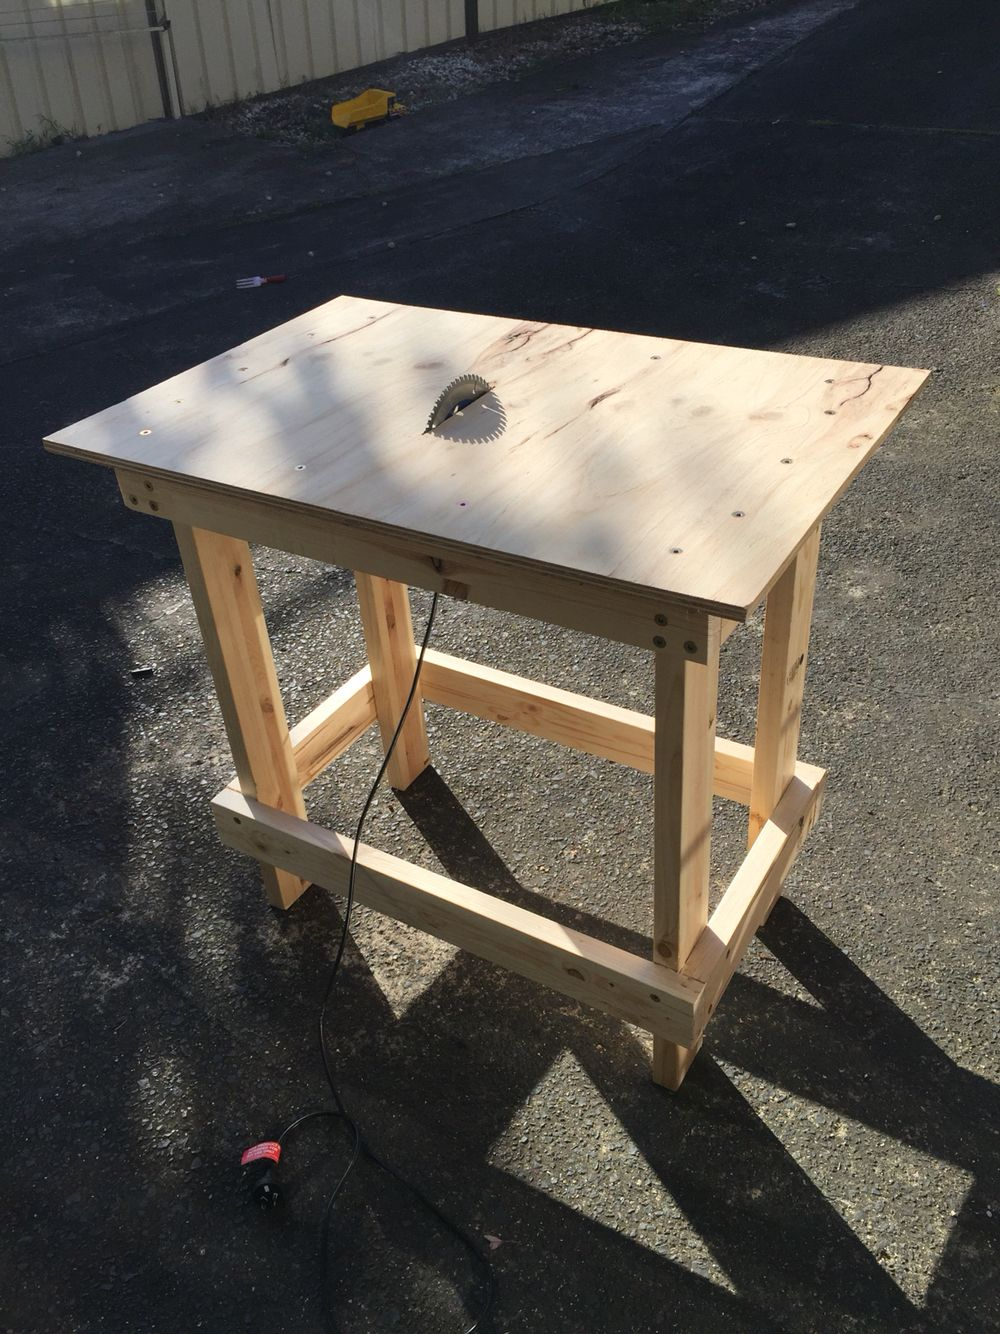 DIY table saw using circular saw … Diy table saw